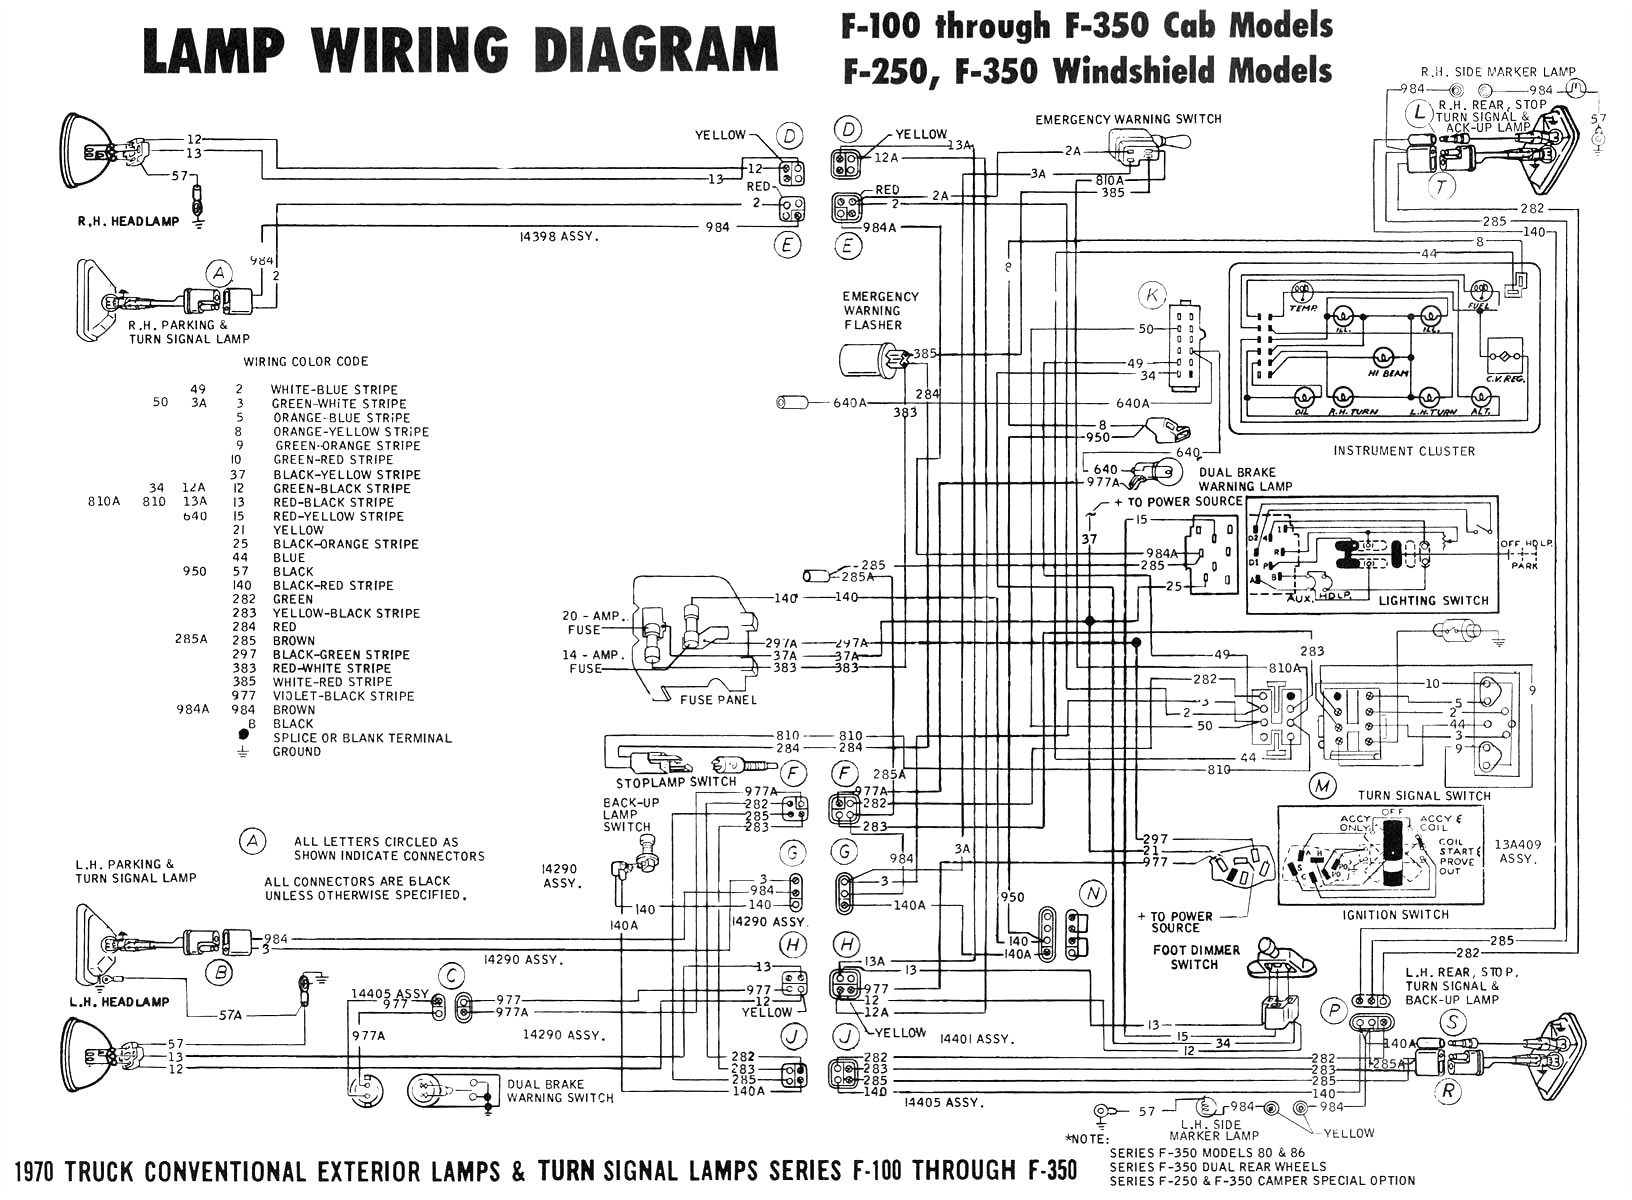 fuse box diagram likewise 2003 chevy impala wiring on astra h wiring diagram also john deere fuel pump diagram likewise freightliner